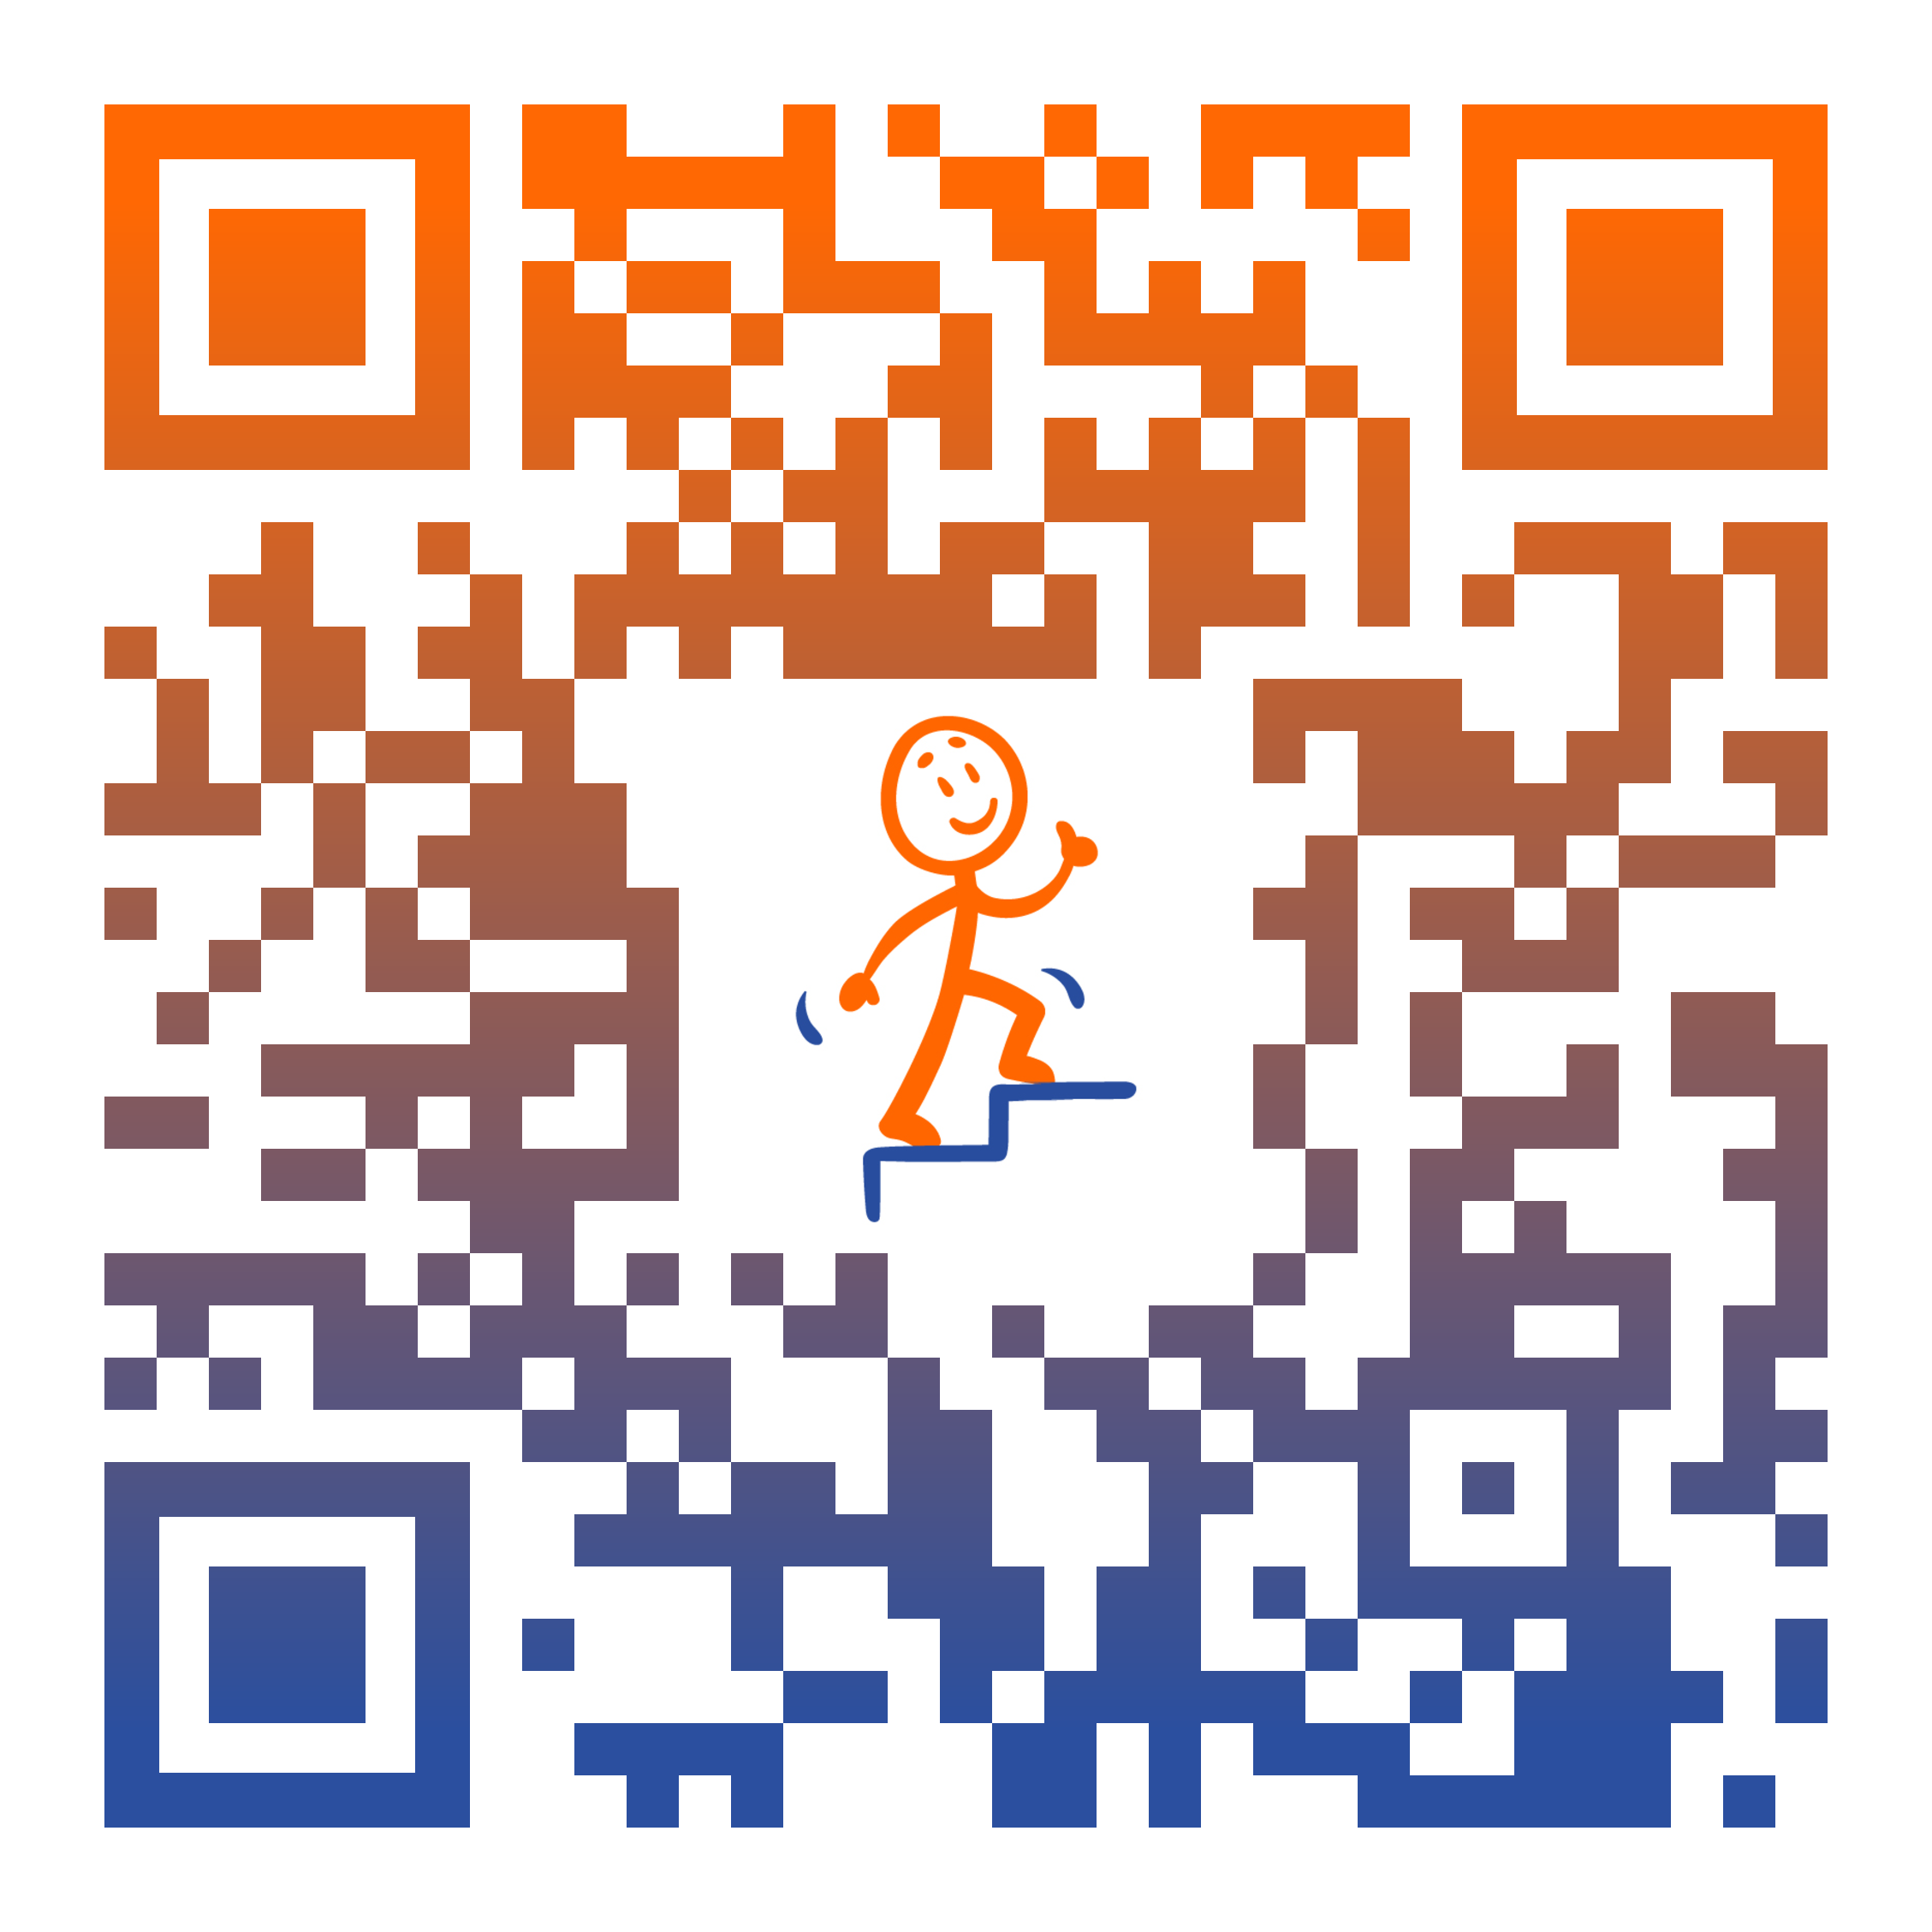 qr code simply upright